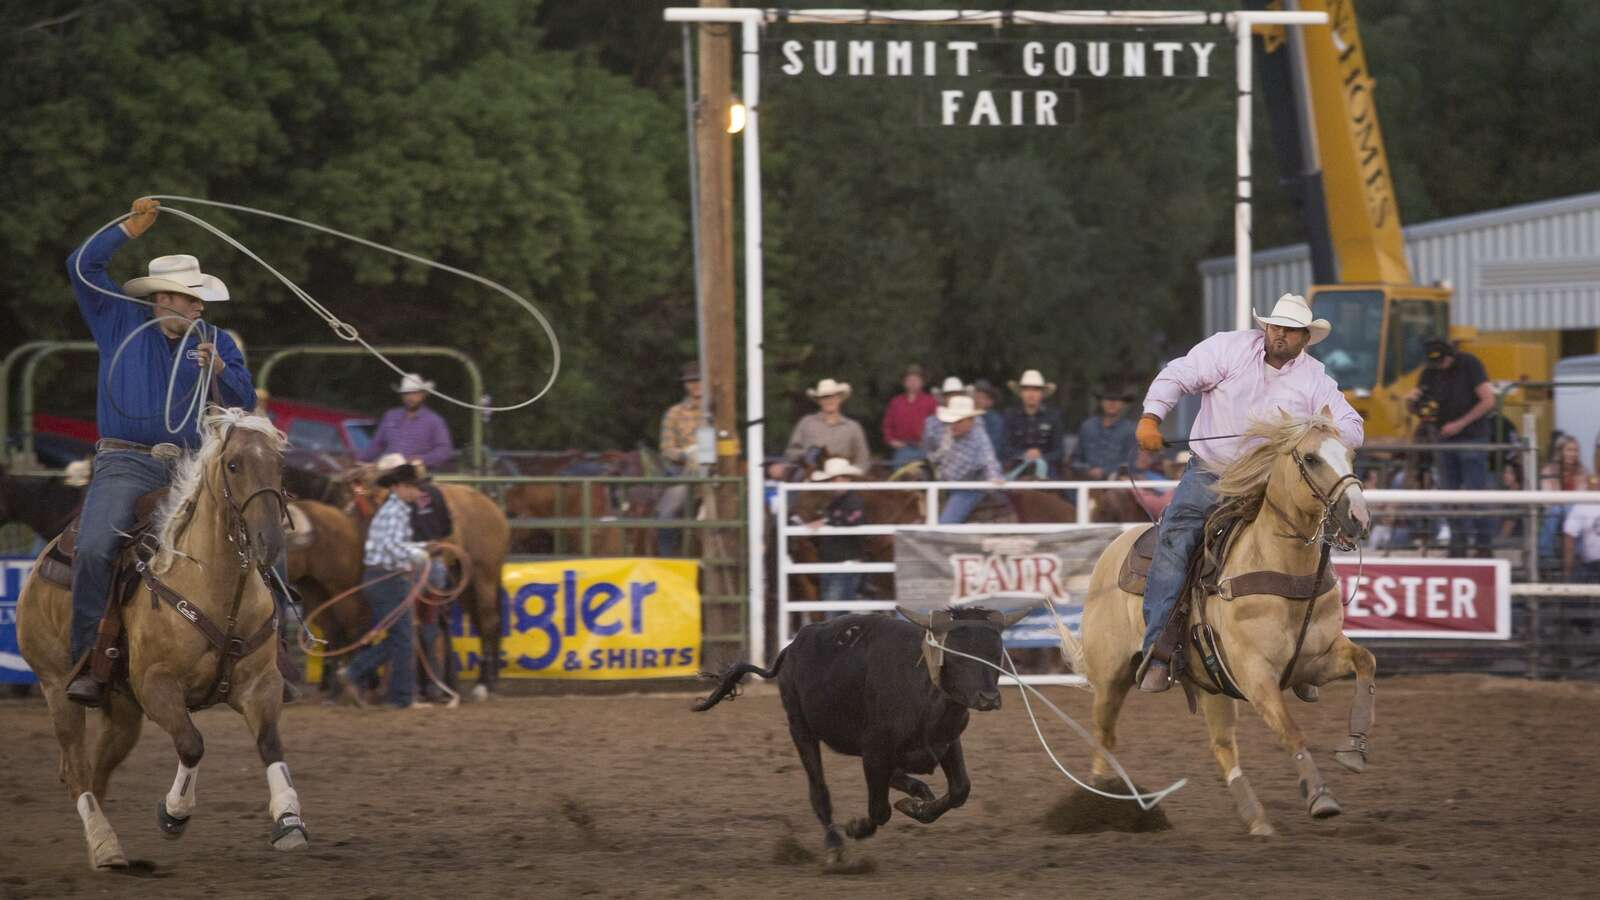 The Summit County Fair, facing budget cuts, looks to raise revenue with price increases